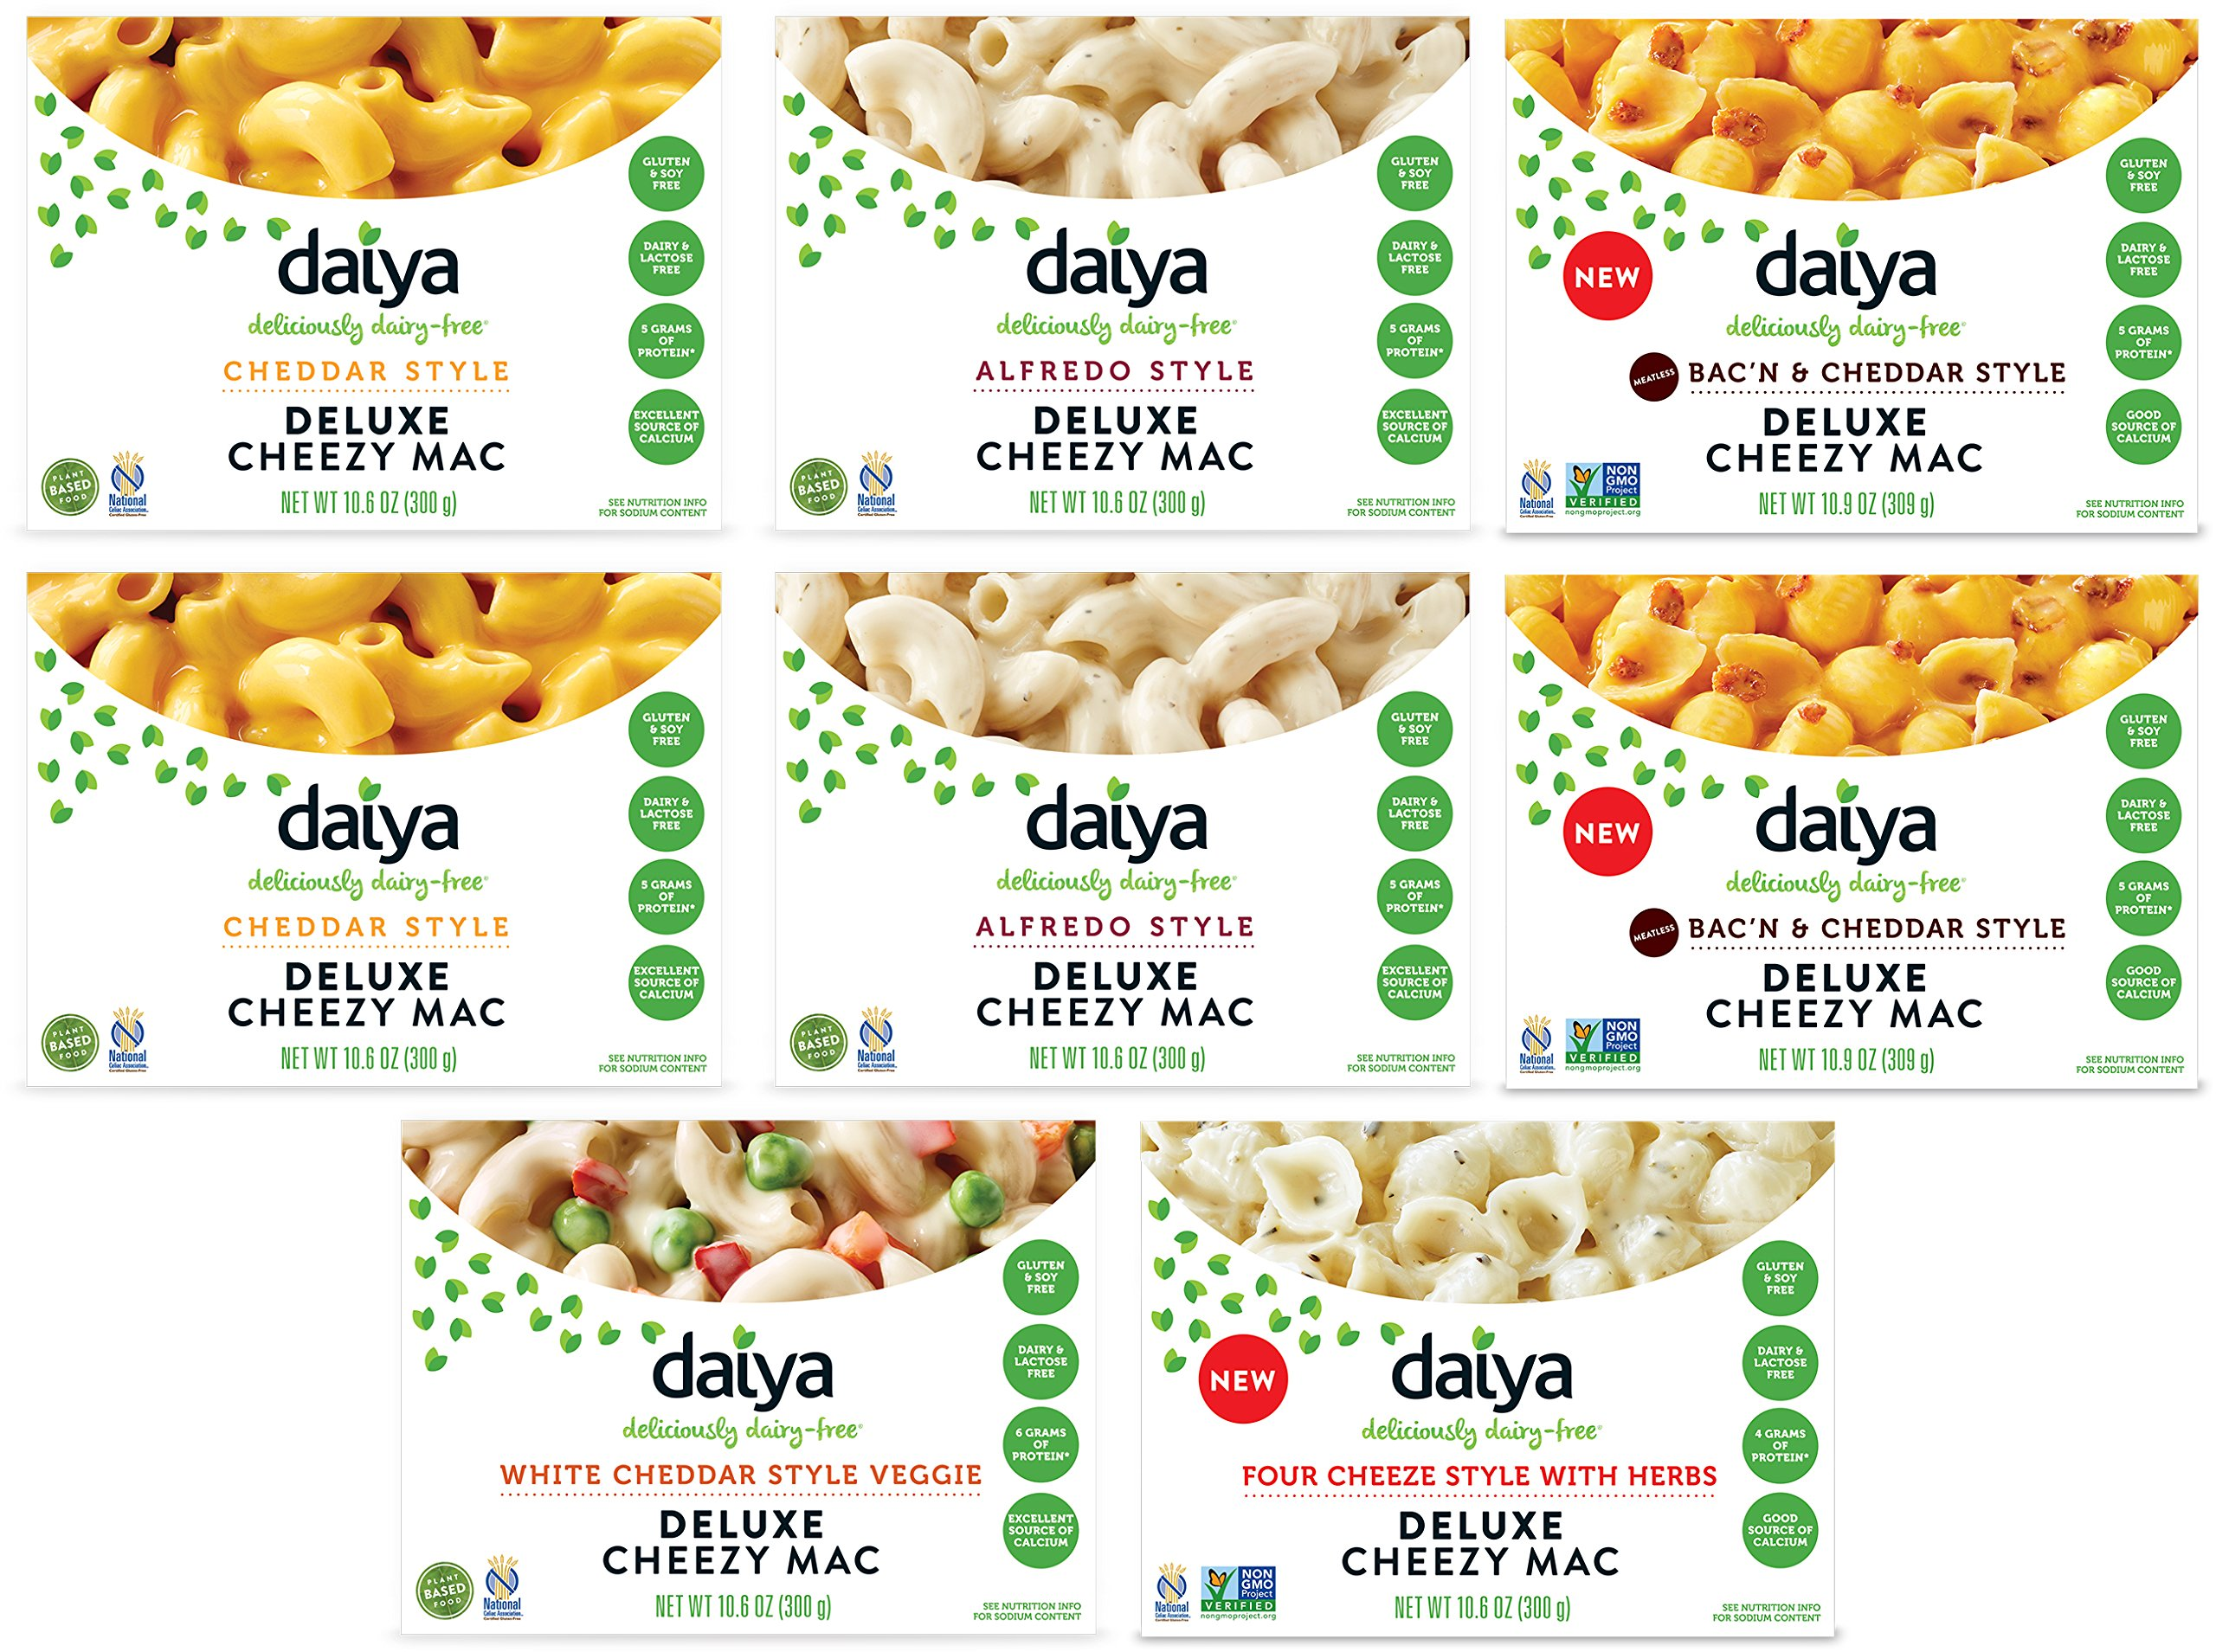 Daiya Cheezy Mac, Variety Pack with 5 Flavors :: Rich & Creamy Plant-Based Mac & Cheese :: Deliciously Dairy Free, Vegan, Gluten Free, Soy Free :: With Gluten Free Noodles (8 Pack) by Daiya